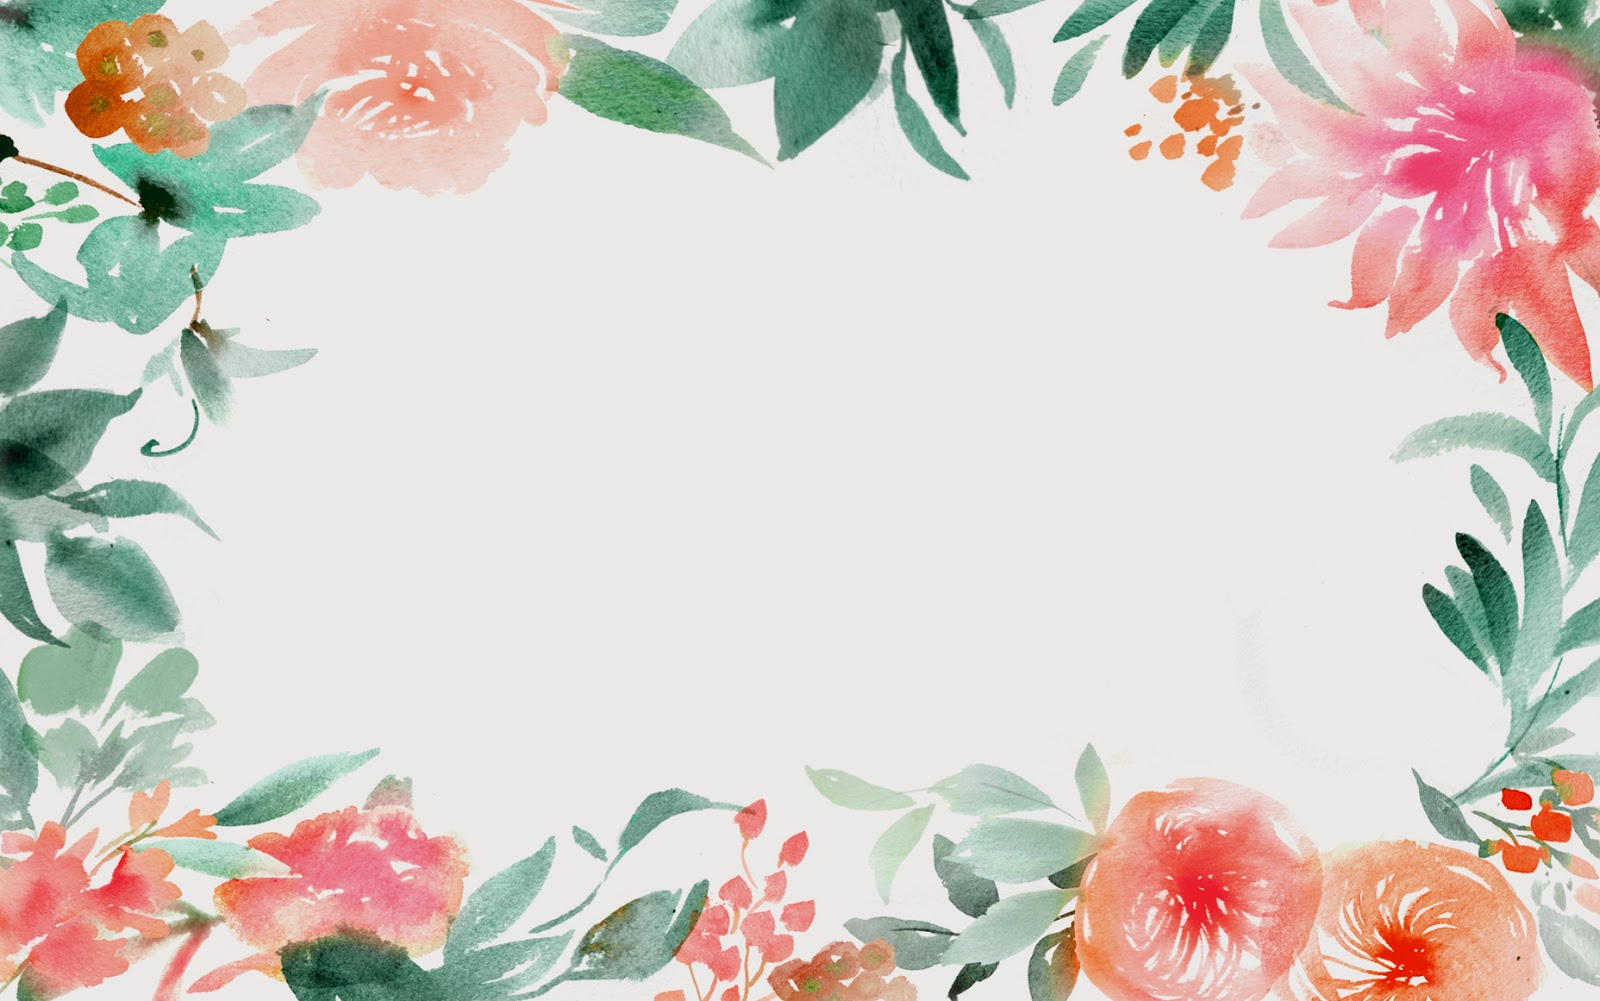 Ombre Watercolor Desktop Wallpaper Watercolour Background